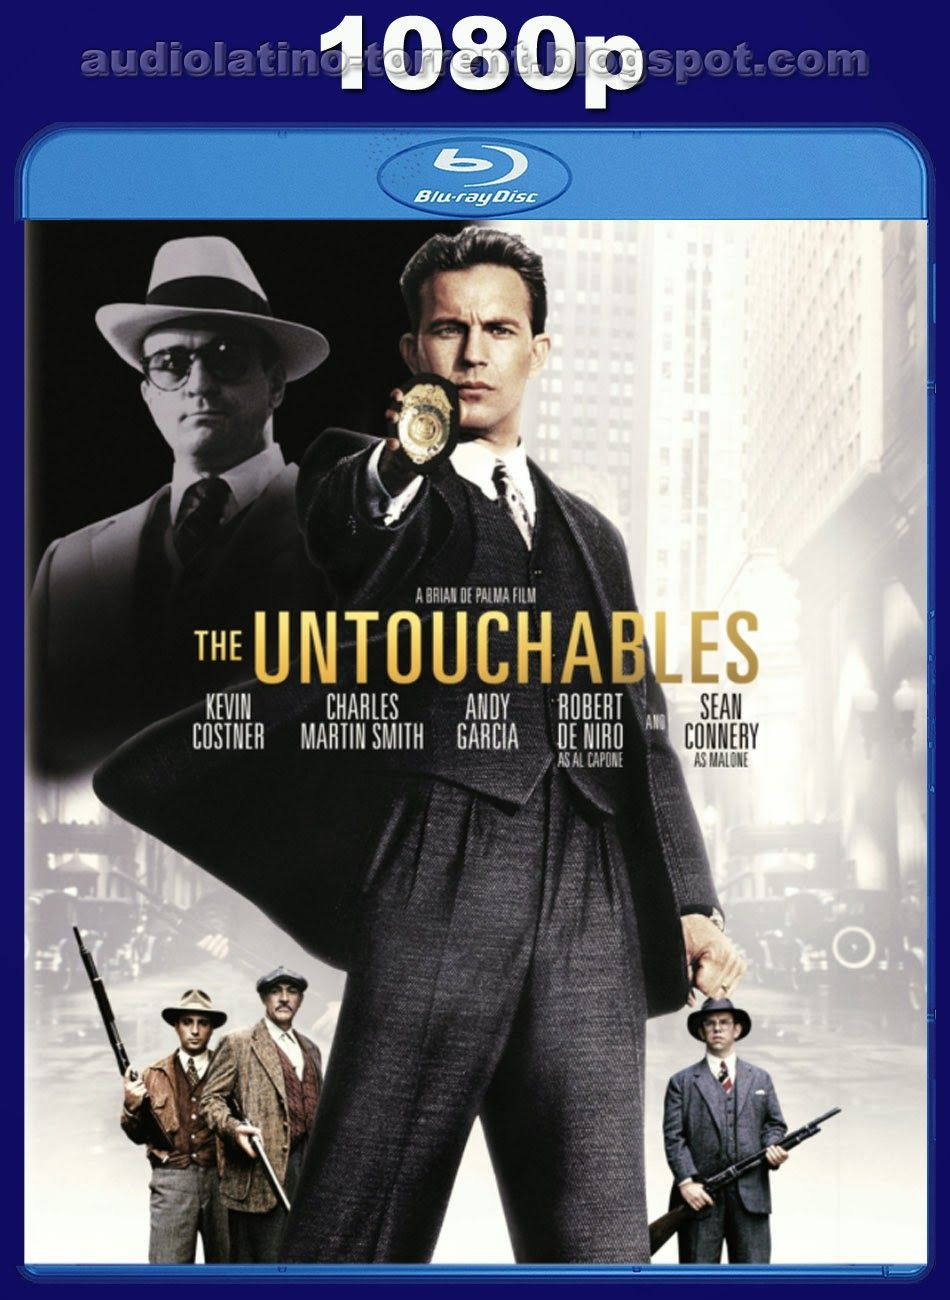 Pin By Audiolatino Torrent On The Untouchables 1987 1080p Gangster Movies Good Movies On Netflix Crime Movies